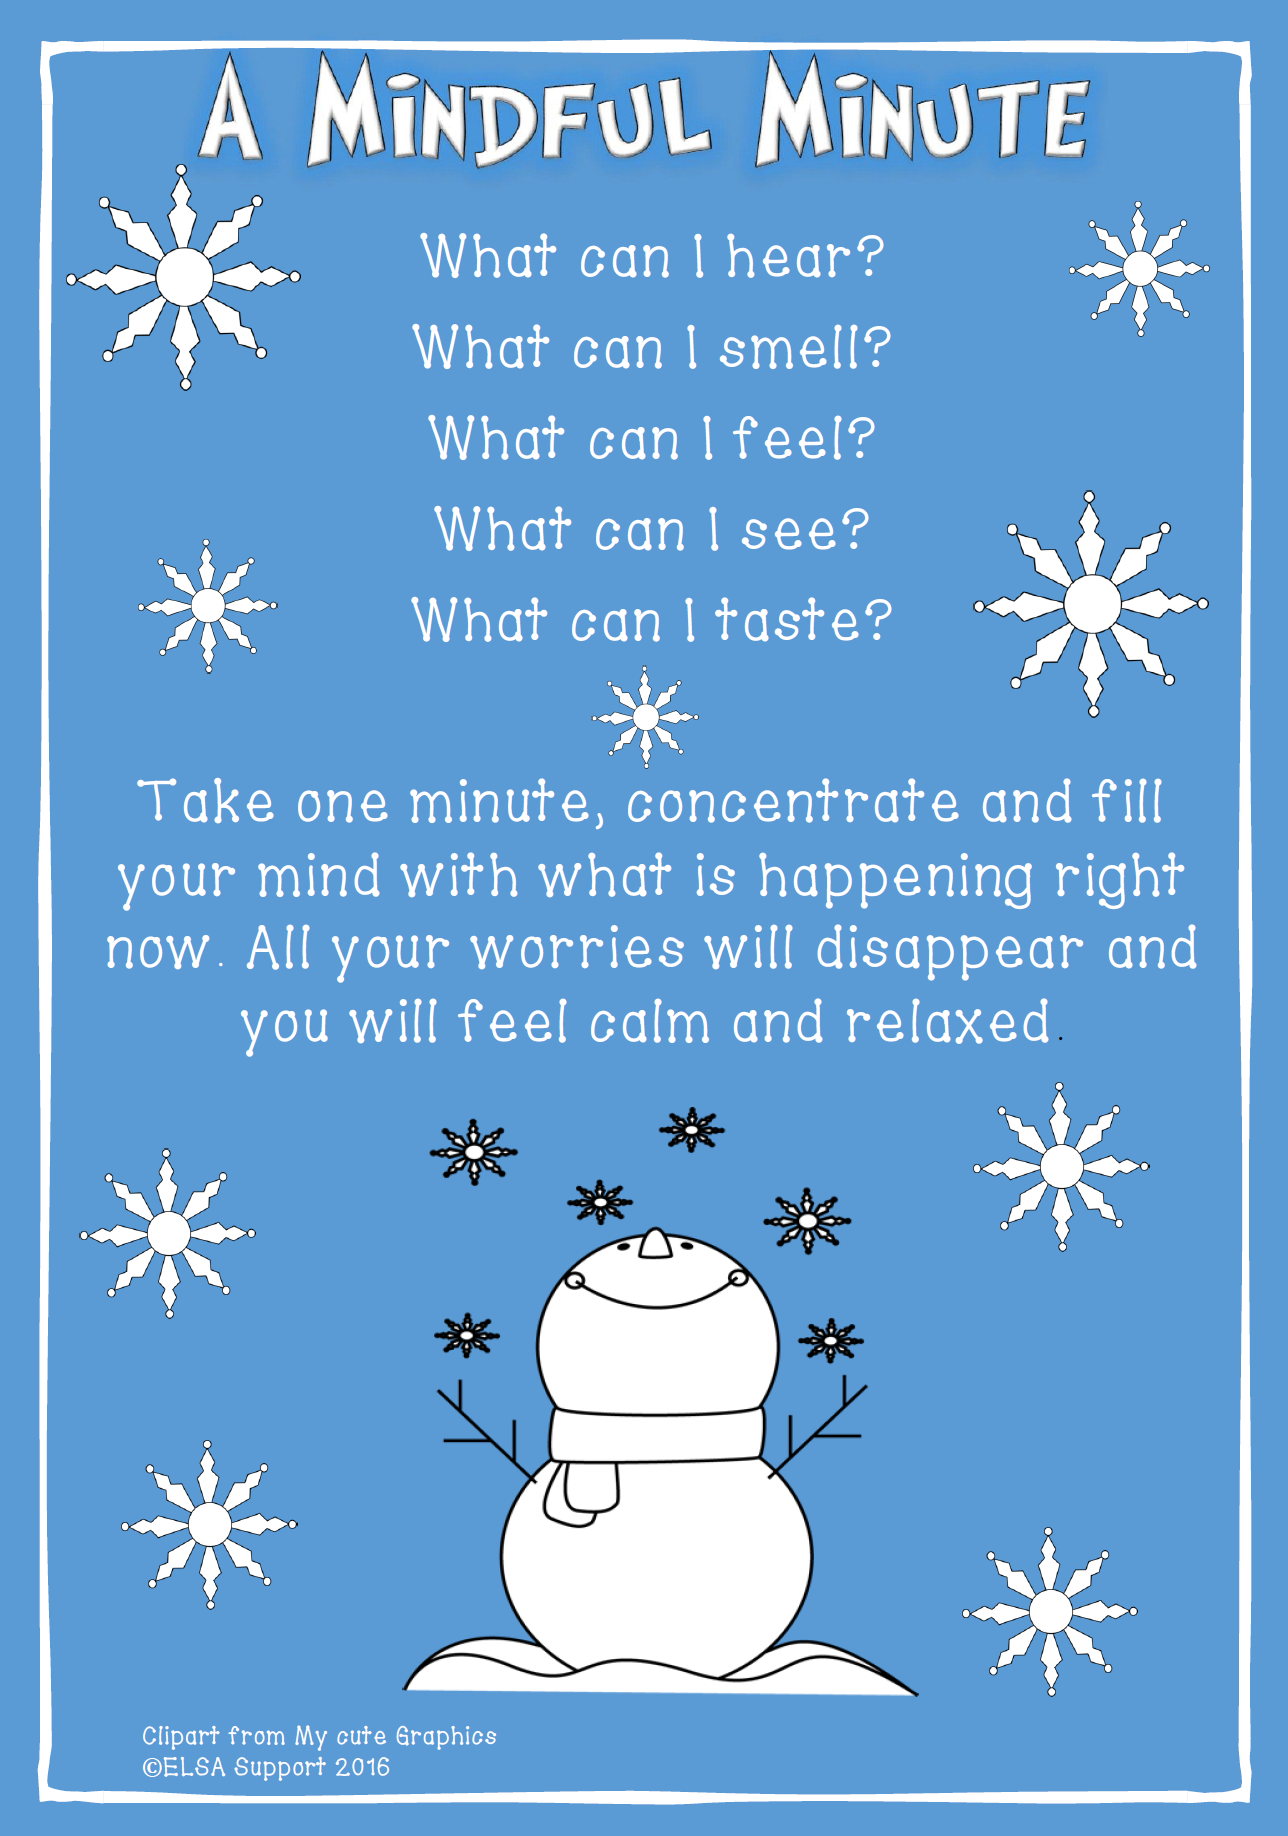 Take Mindful Minute on Social Skills Group Activities For Kids